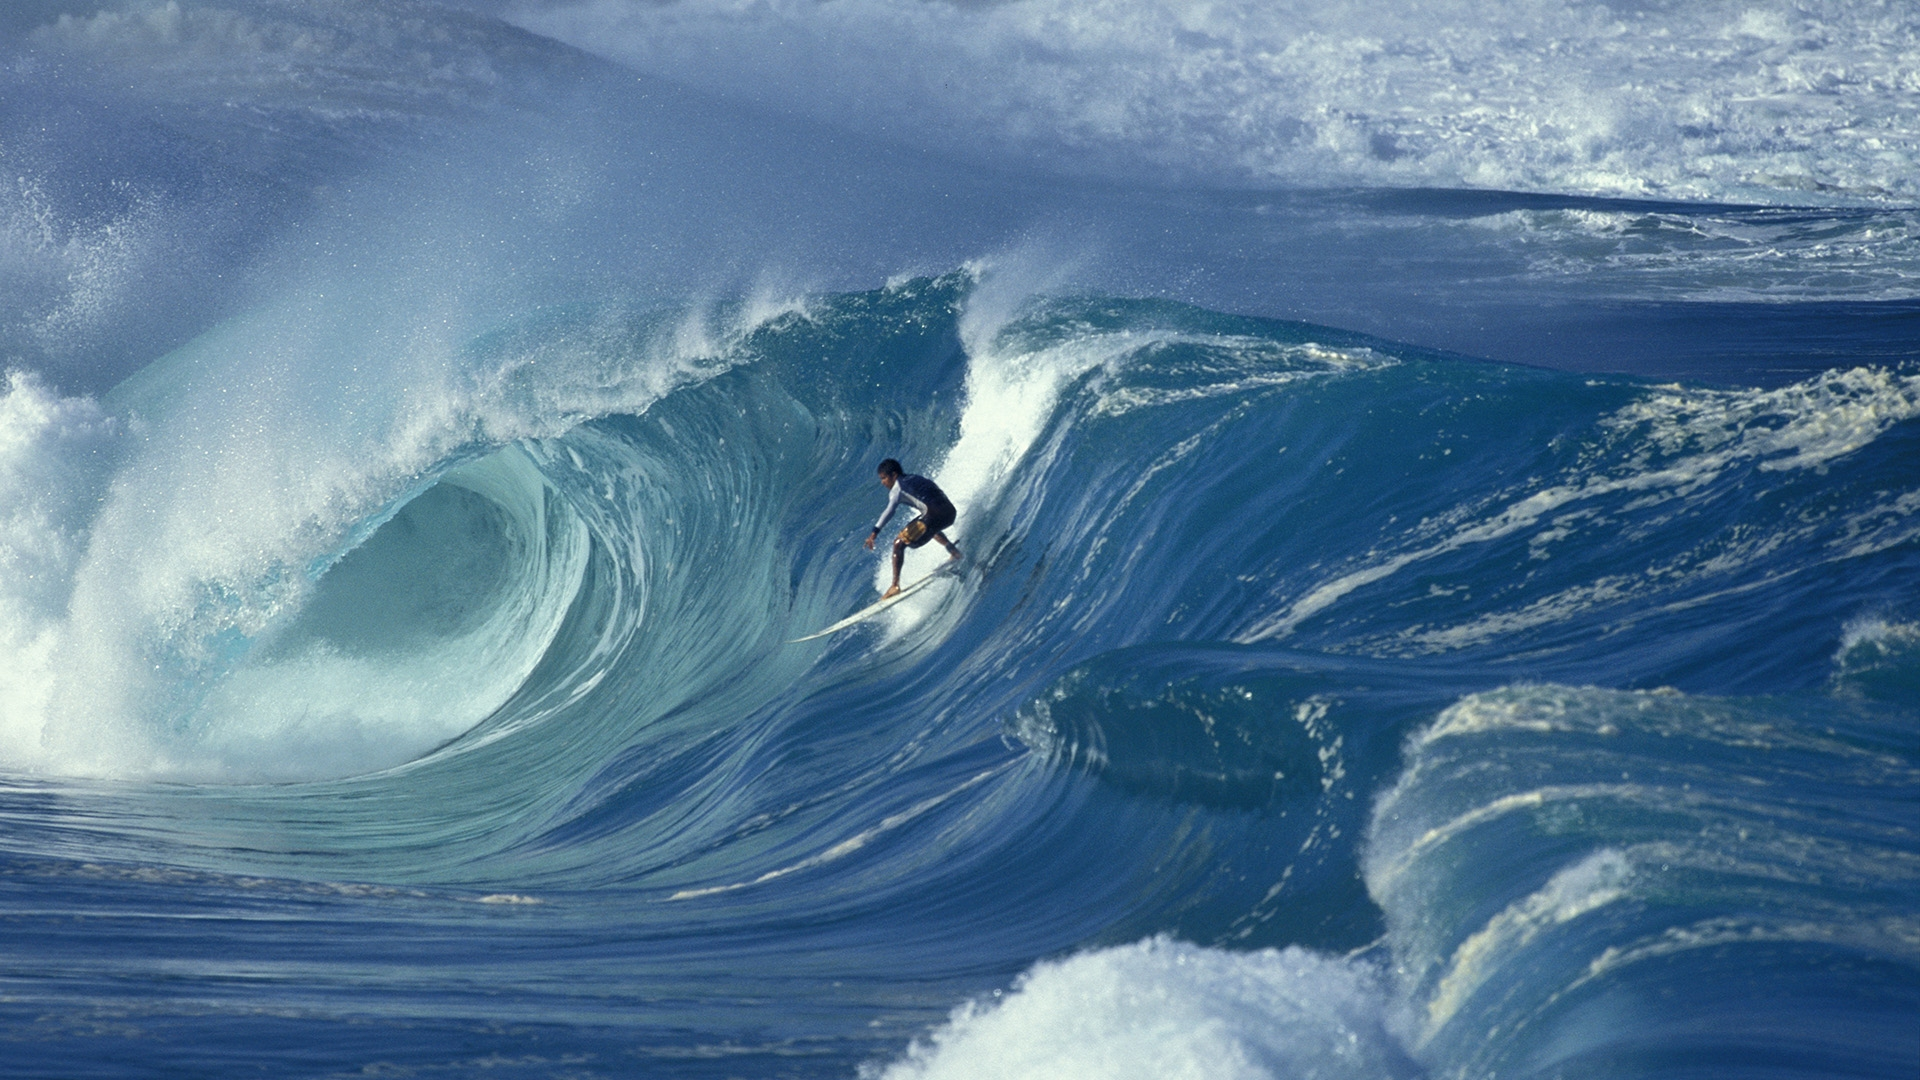 Surfing 1920x1080 Hd Images 1920x1080